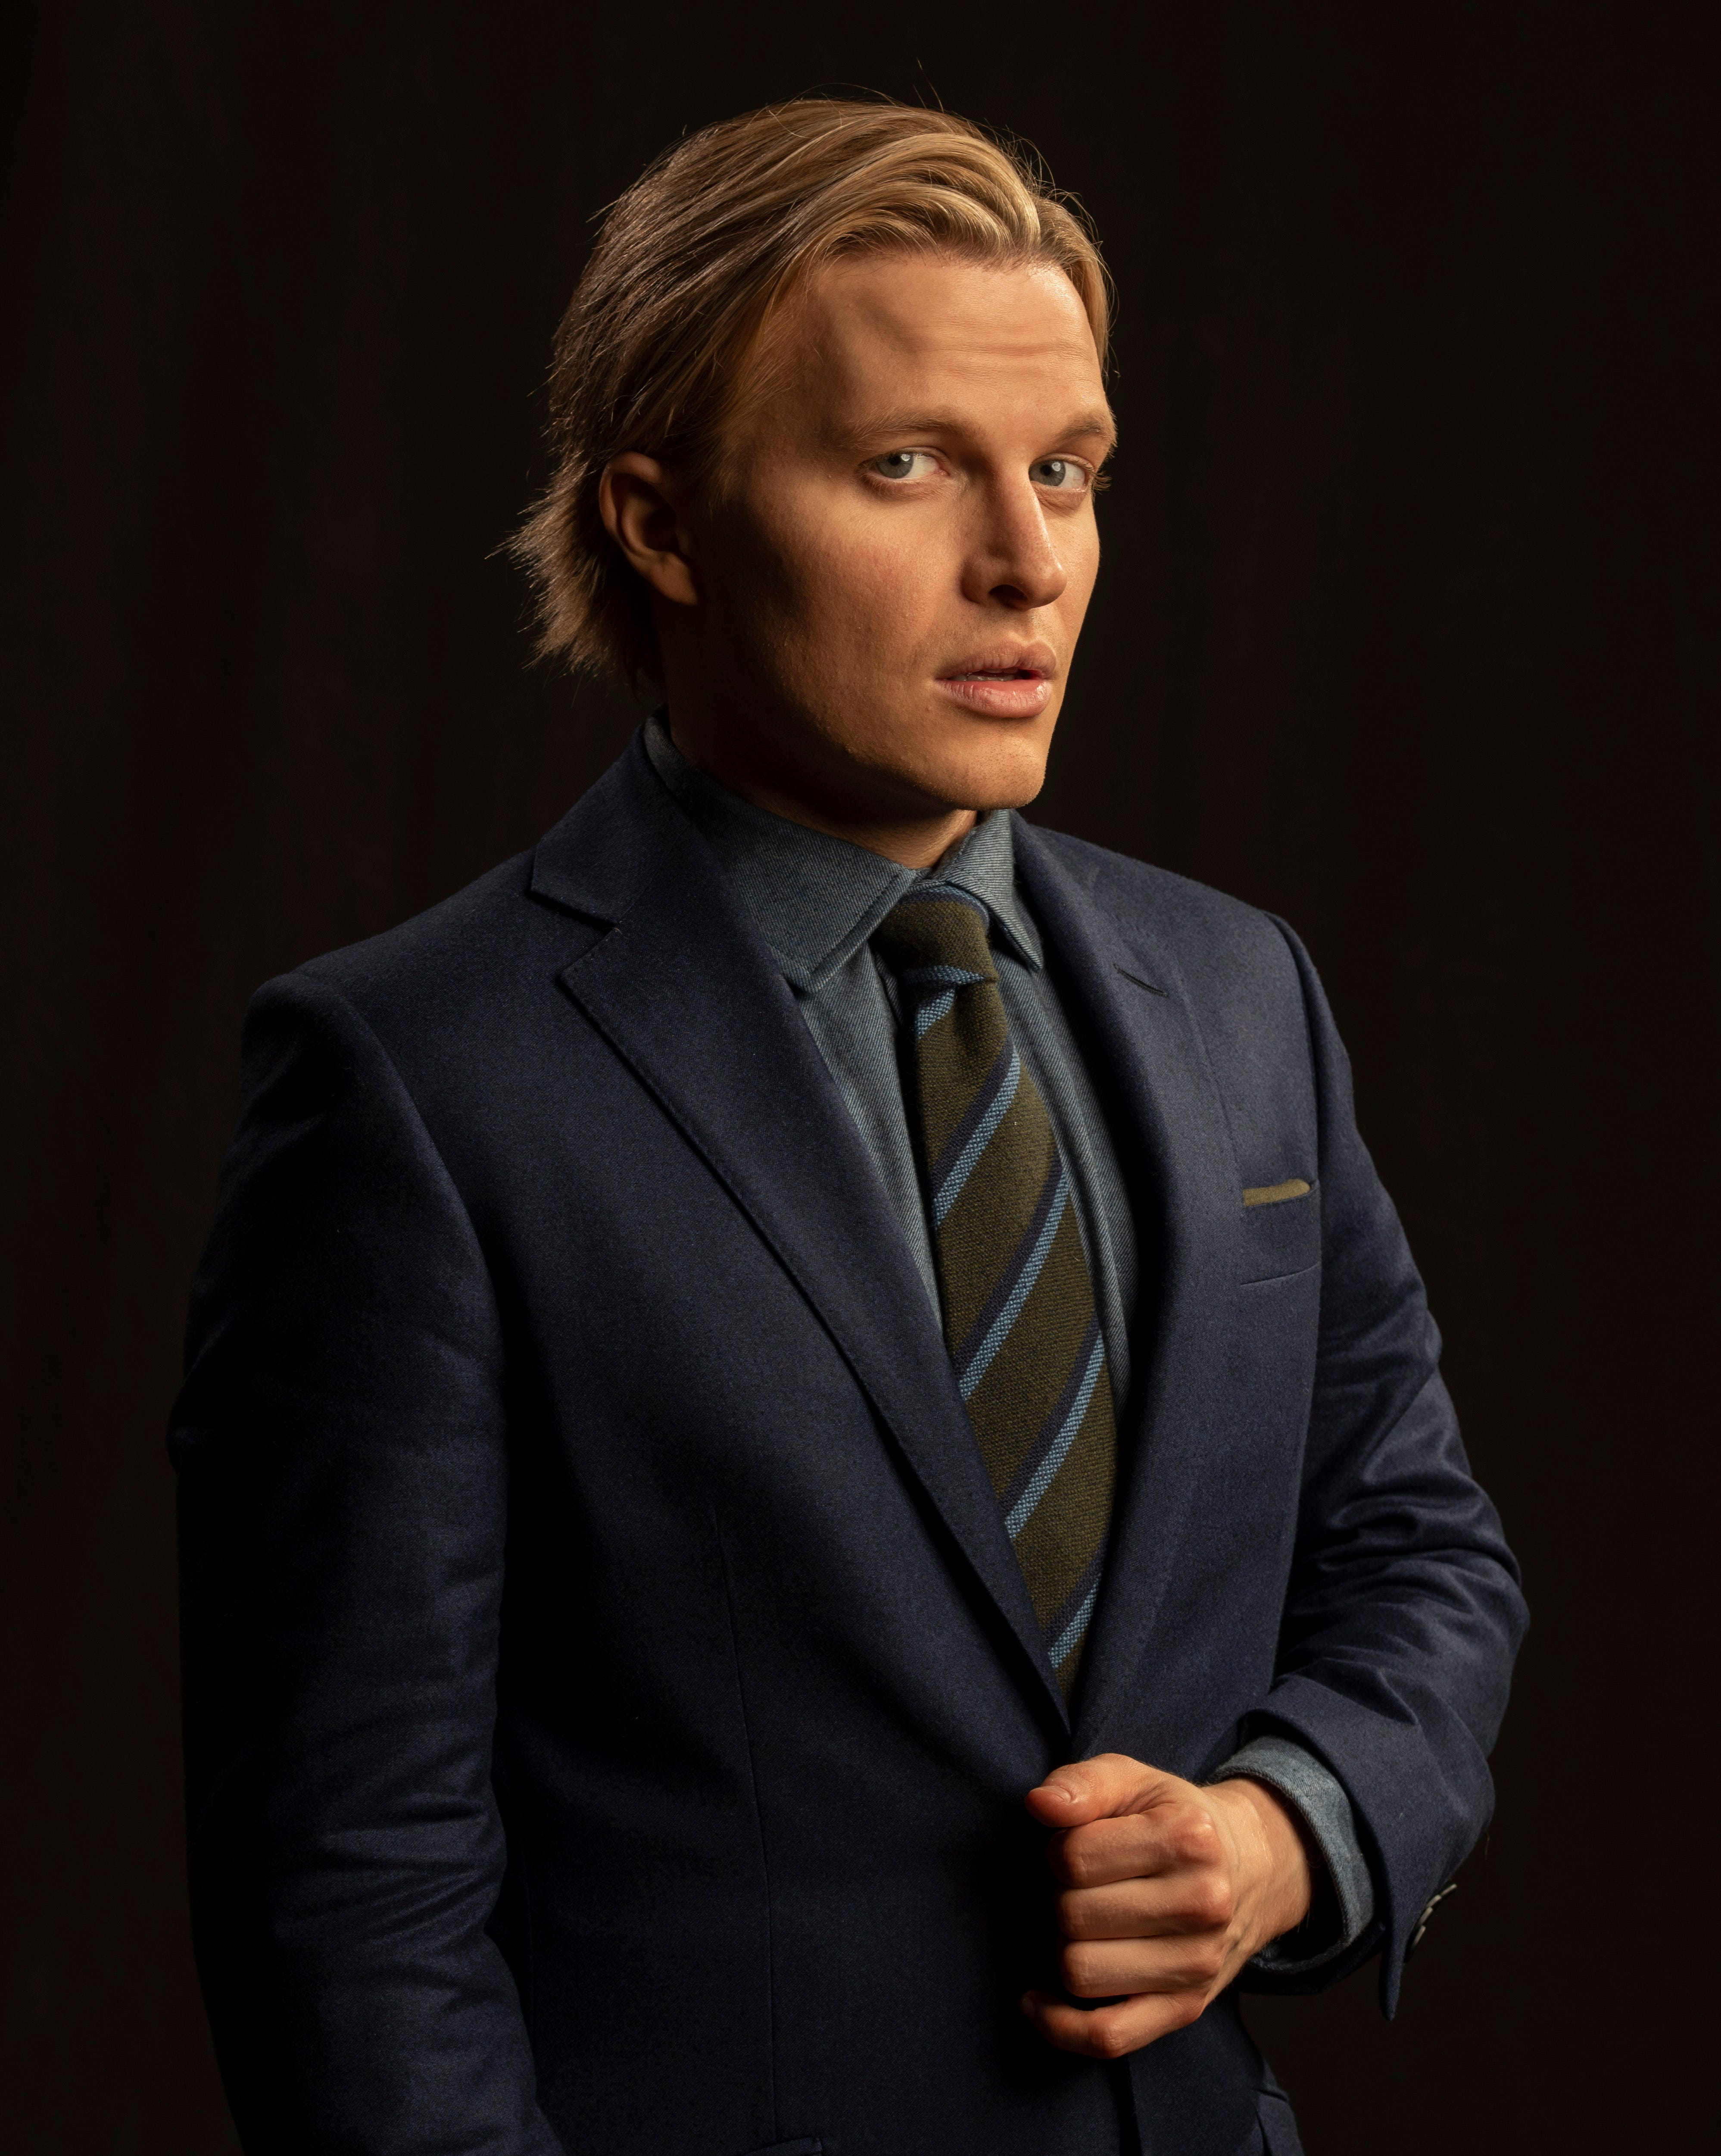 Ronan Farrow says NBC's alleged cover-up of sexual misconduct is 'bigger' than Matt Lauer